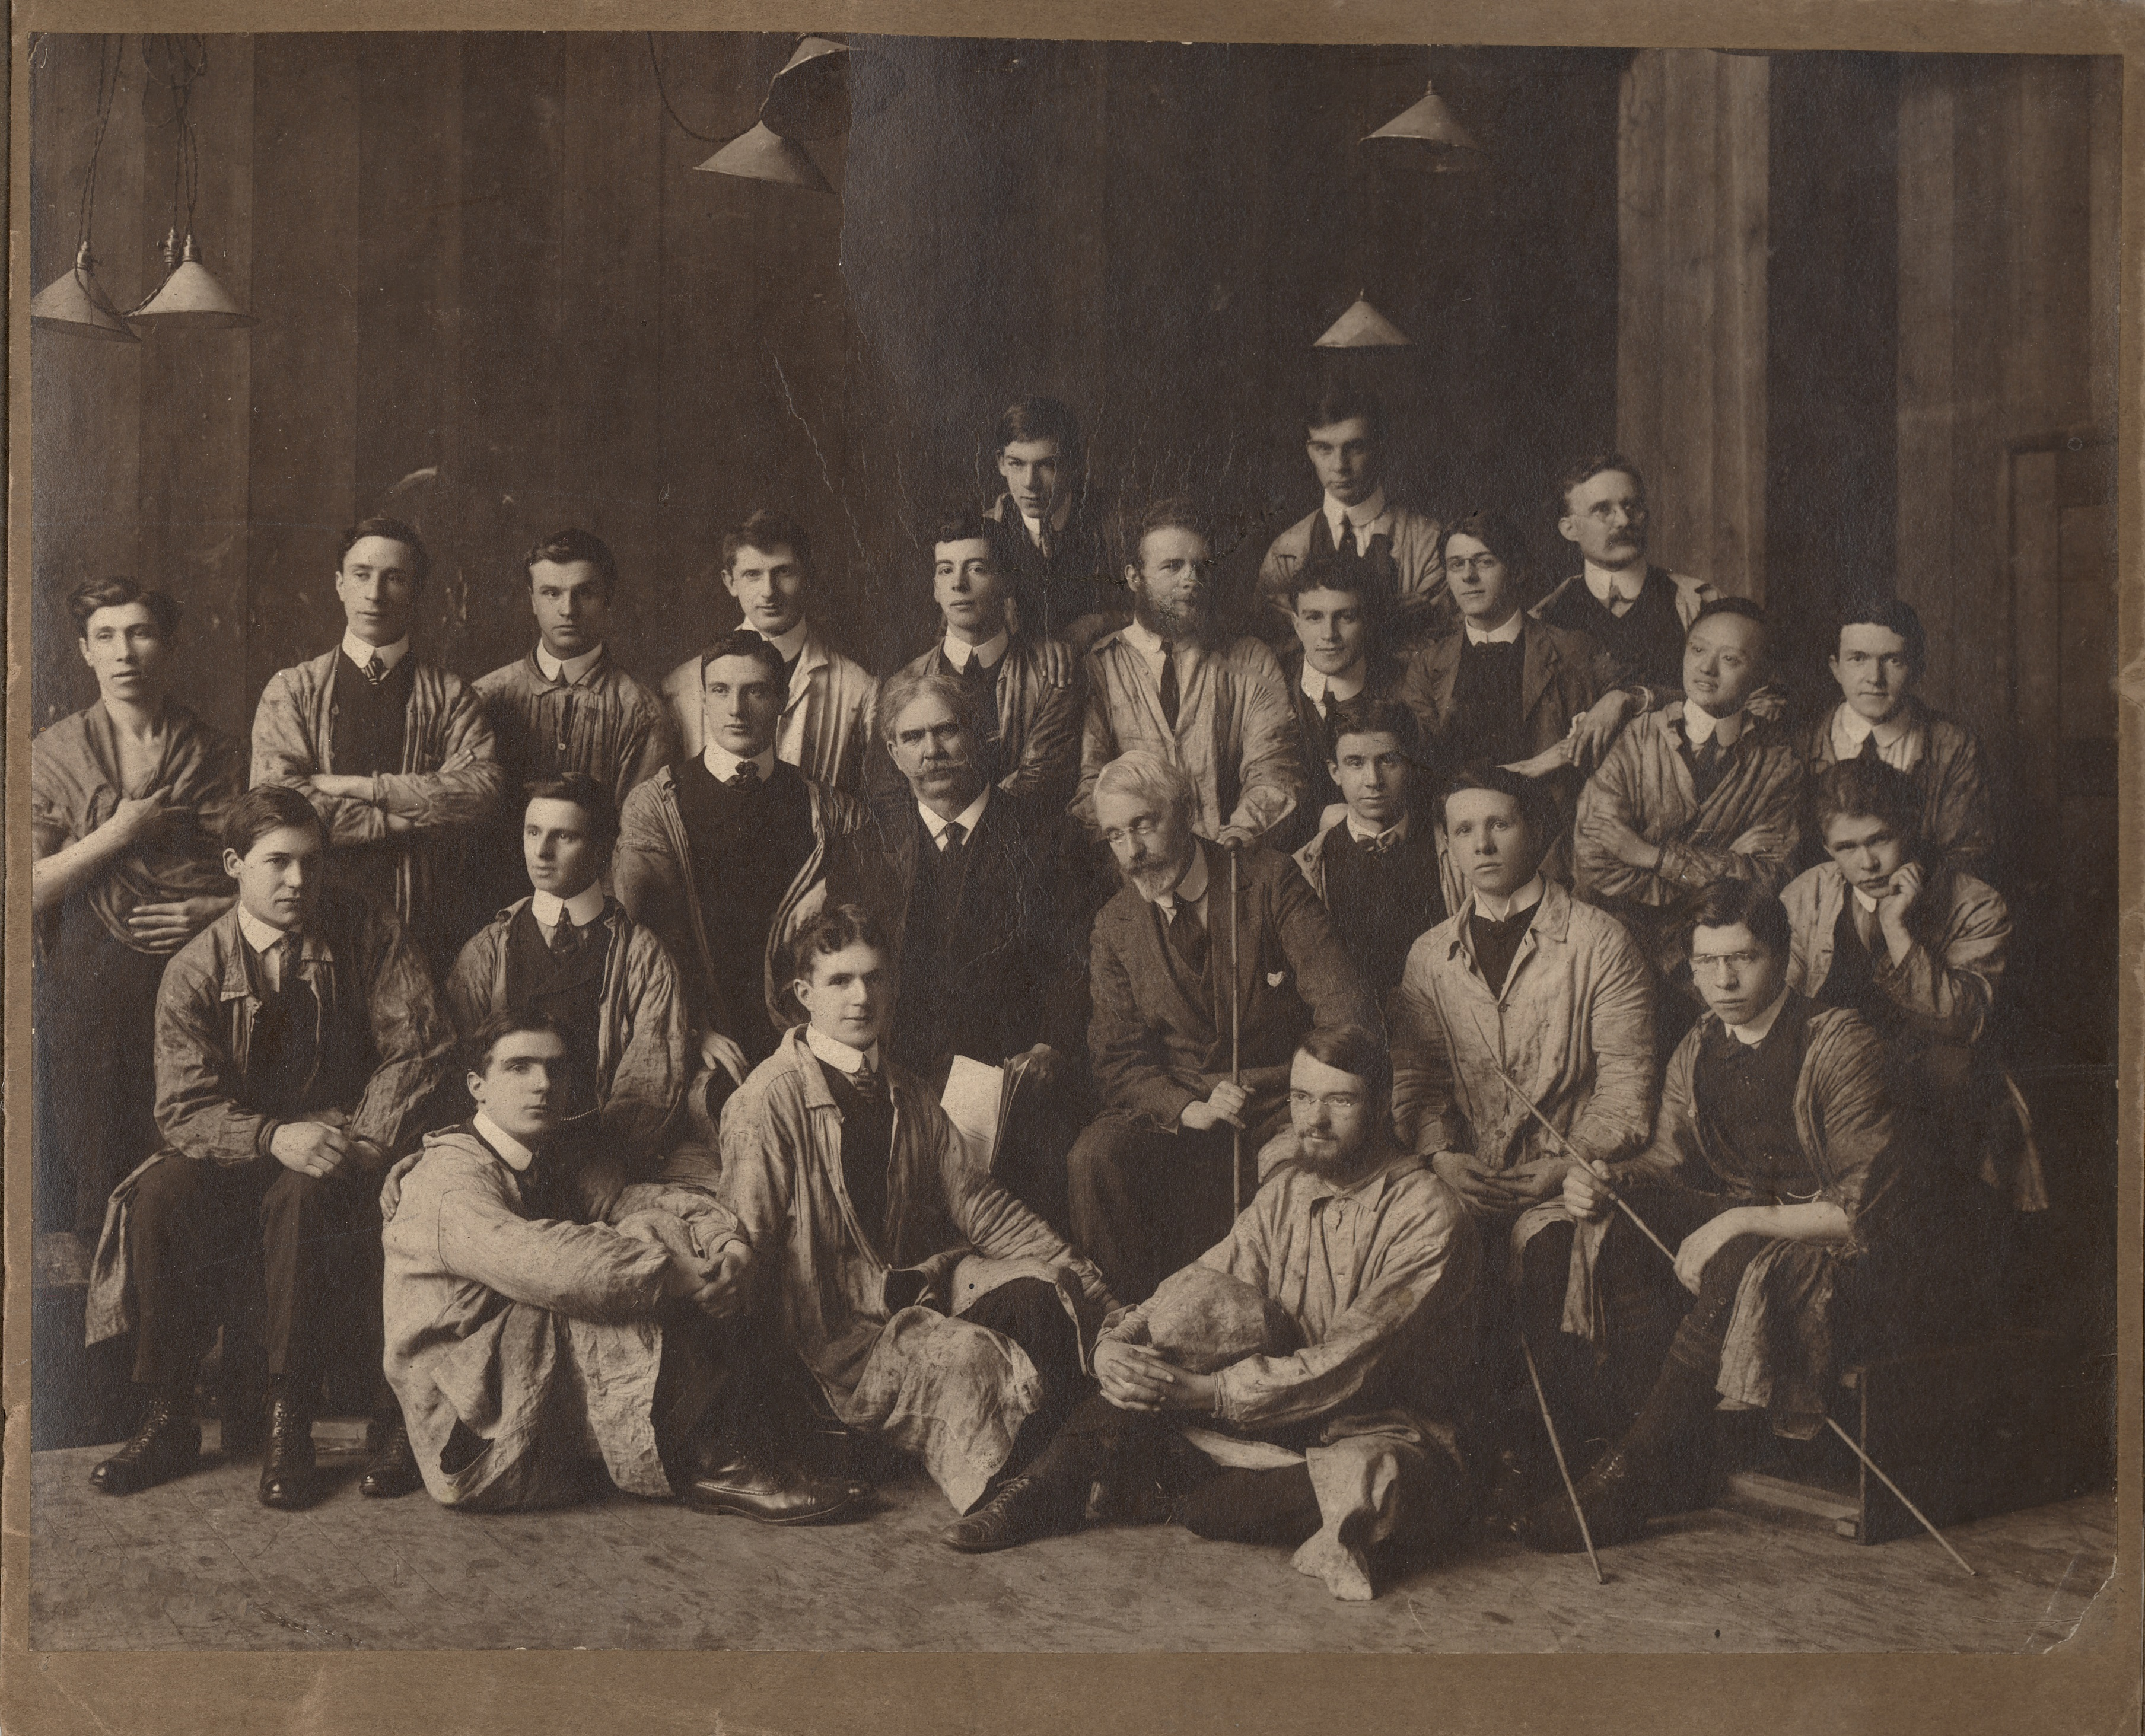 Tsoo Hong Lee (far right) with fellow Drawing and Painting students, and tutors Newbery and Greiffenhagen, c1910